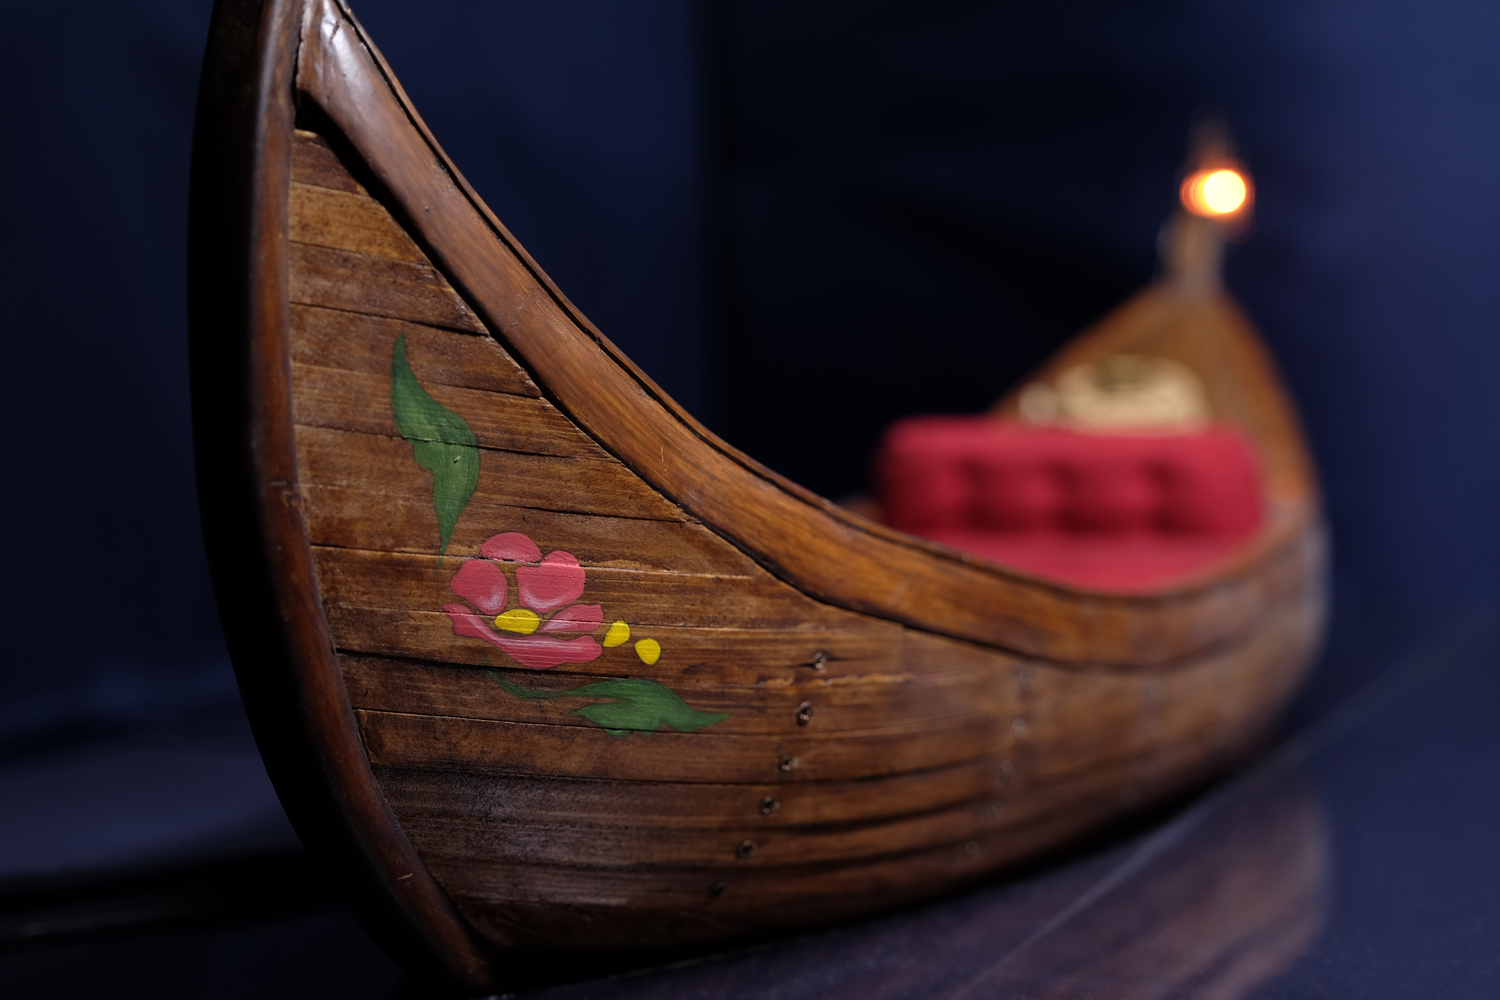 the_boat_tangled